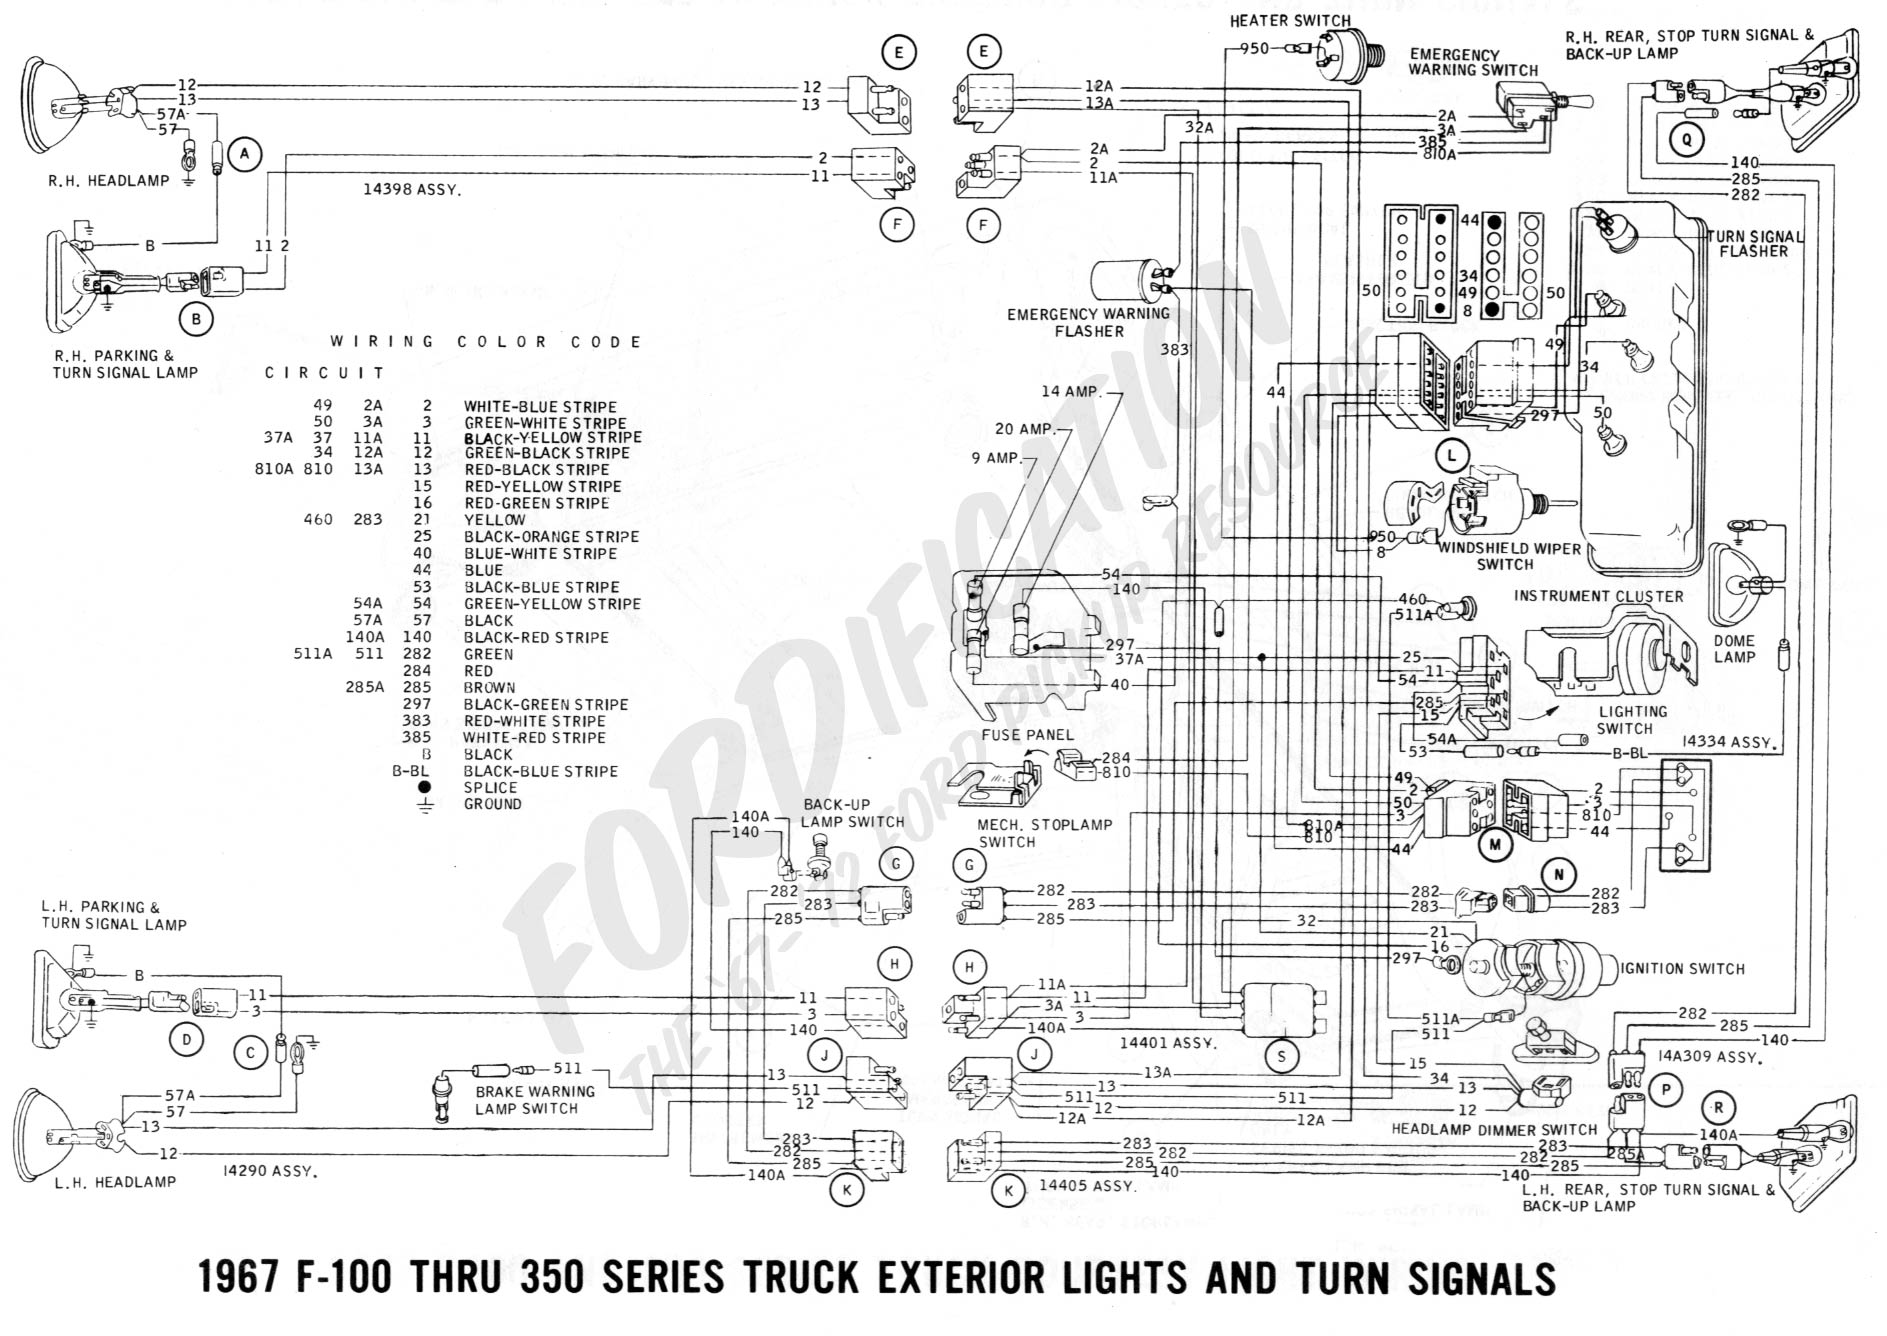 hight resolution of 2001 ford f350 wiring diagram wiring diagram third level 1997 honda prelude ecm wiring diagram ford ecm wiring diagrams